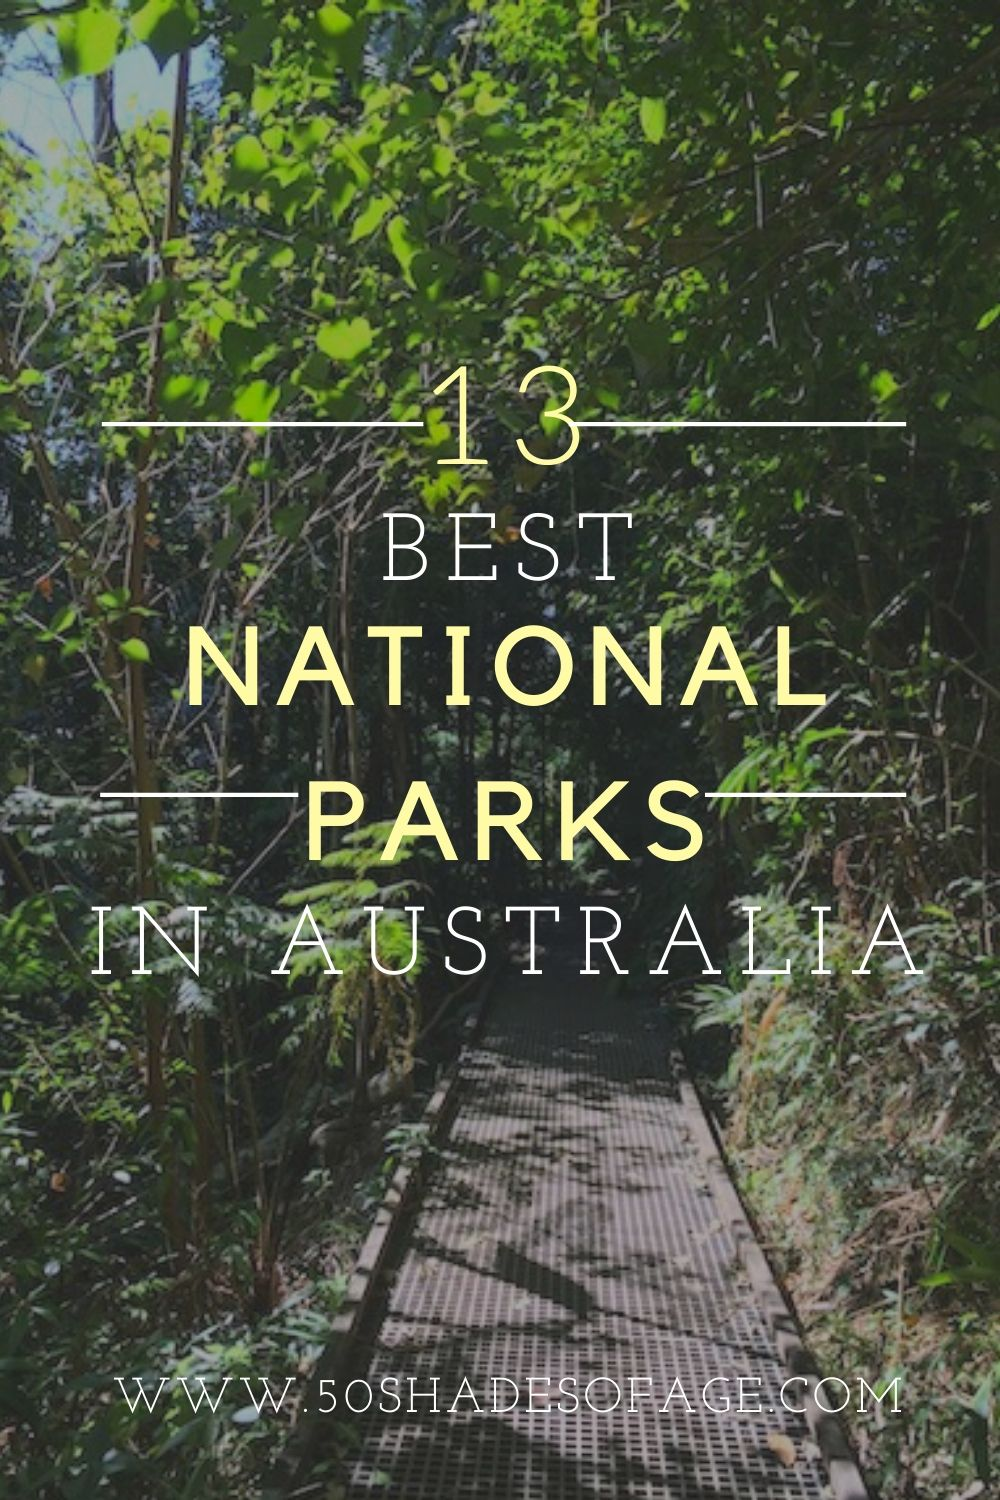 Best National Parks in Australia